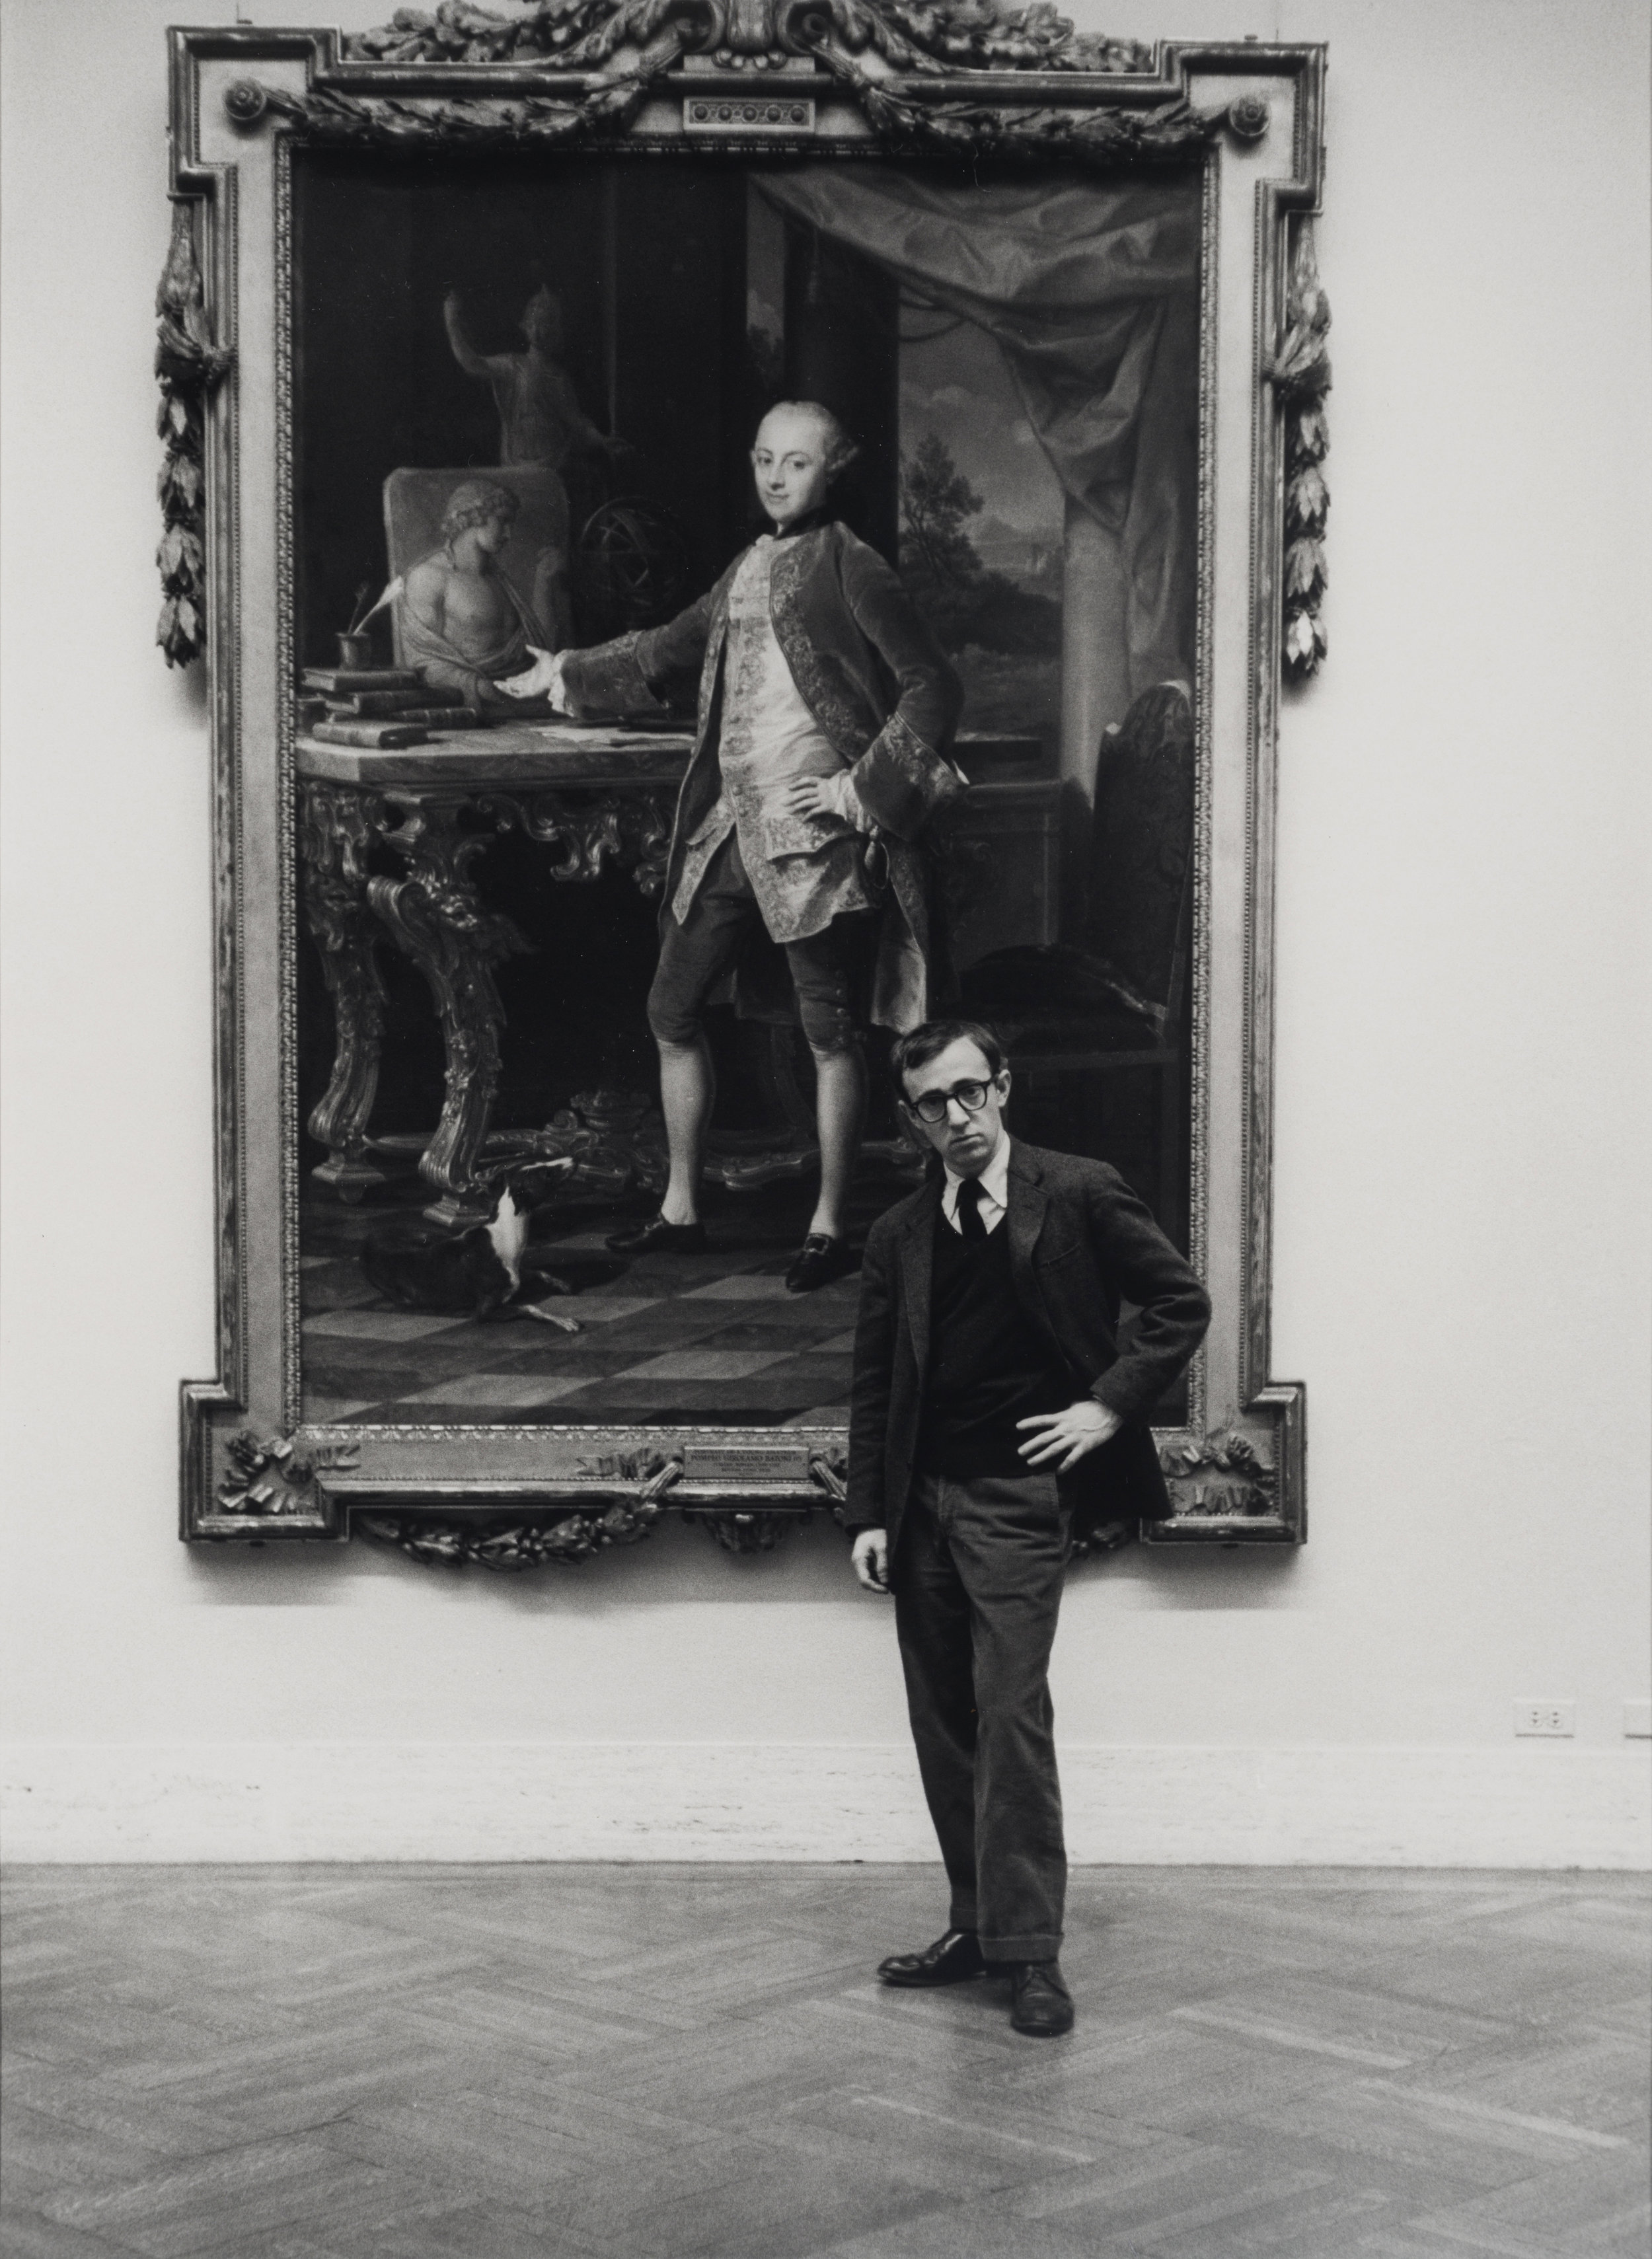 Woody Allen at the Metropolitan Museum, 1963